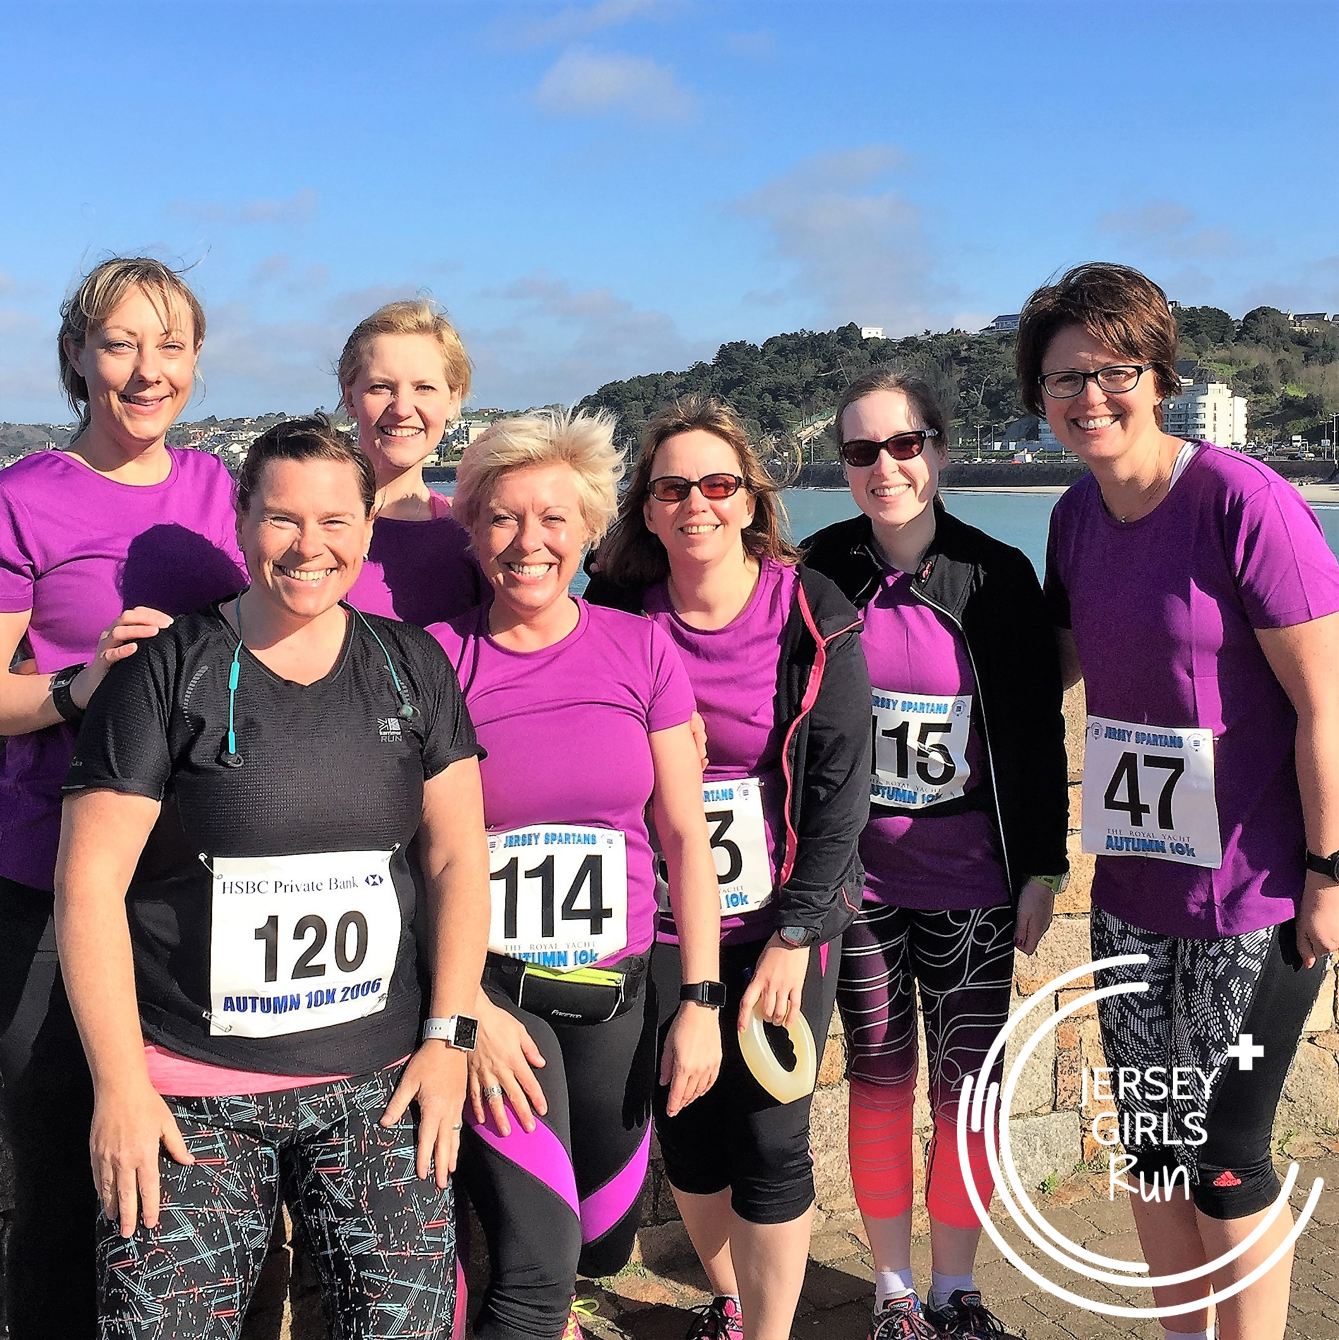 2 APRIL 2017 -  Jersey Spartan Athletic Club's Spring 10k  - WELL DONE to our JERSEY GIRLS who took part in the Jersey Spartan Athletics Club's 10k race.  Debbie and Kathryn have been training on our 5k and Beyond program which started in the middle of January and has built them up from 5k to be able to run 10k.